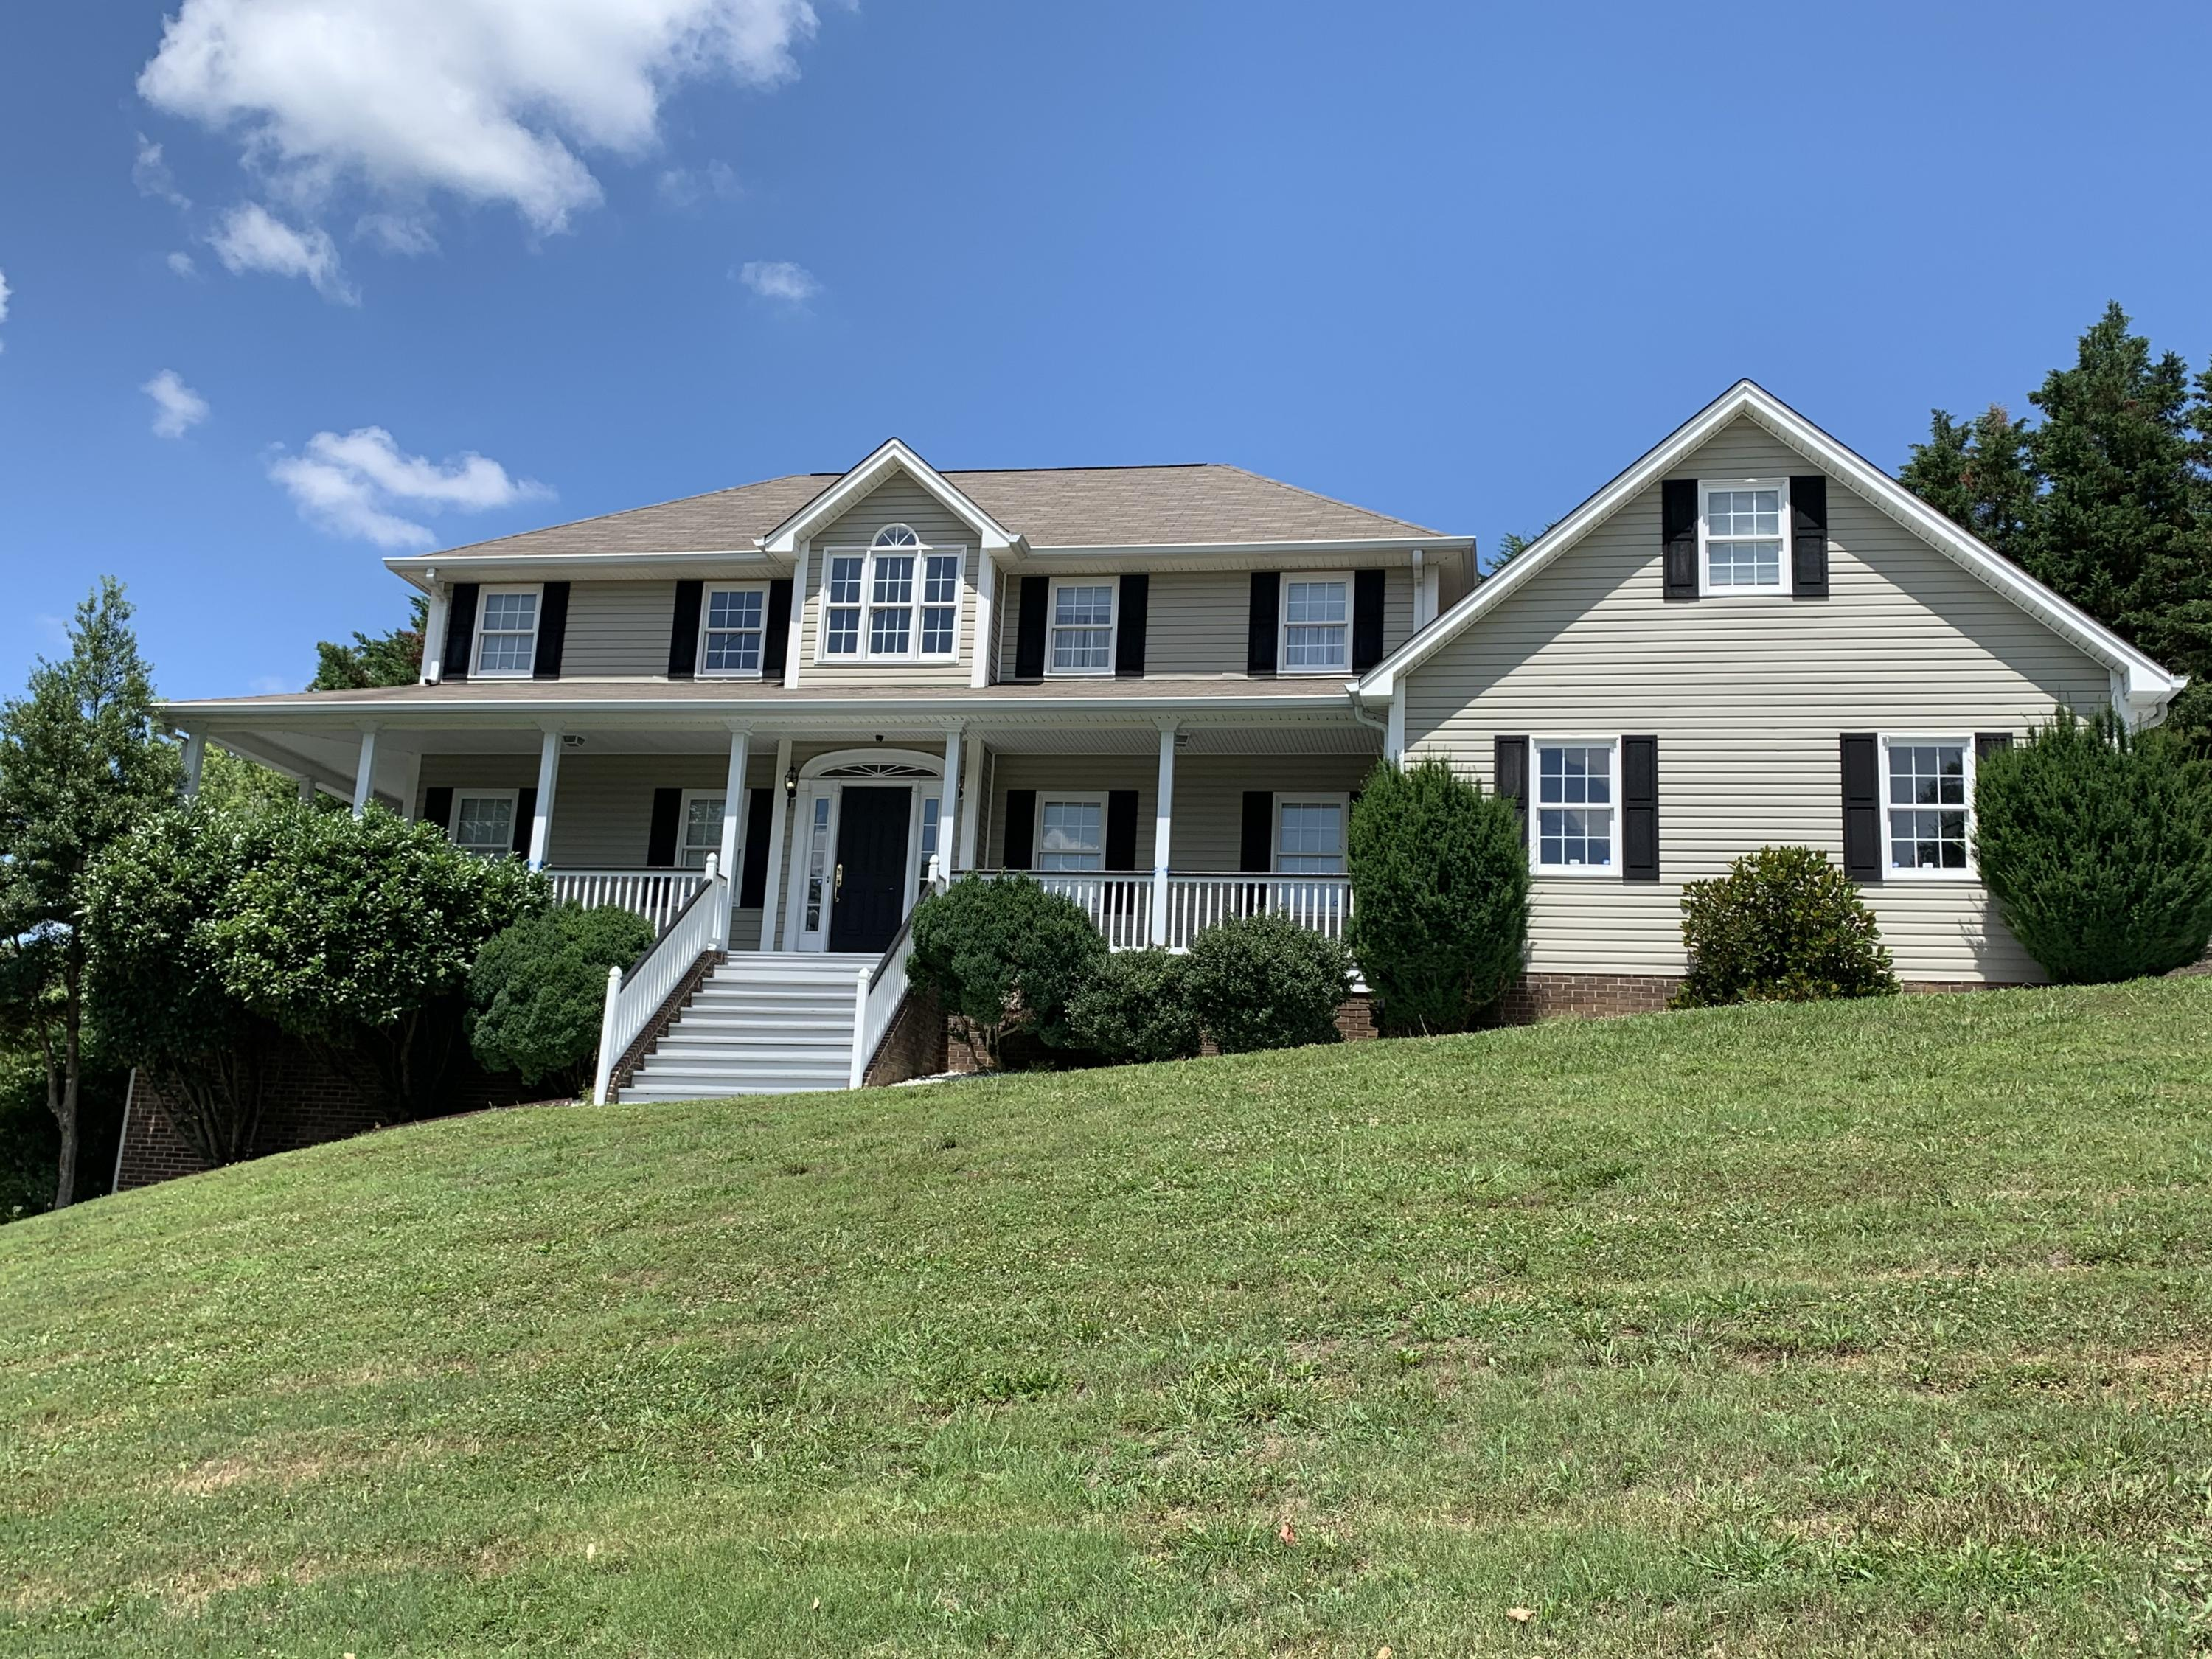 Listing Details for 1906 Pinewood, Cleveland, TN 37312